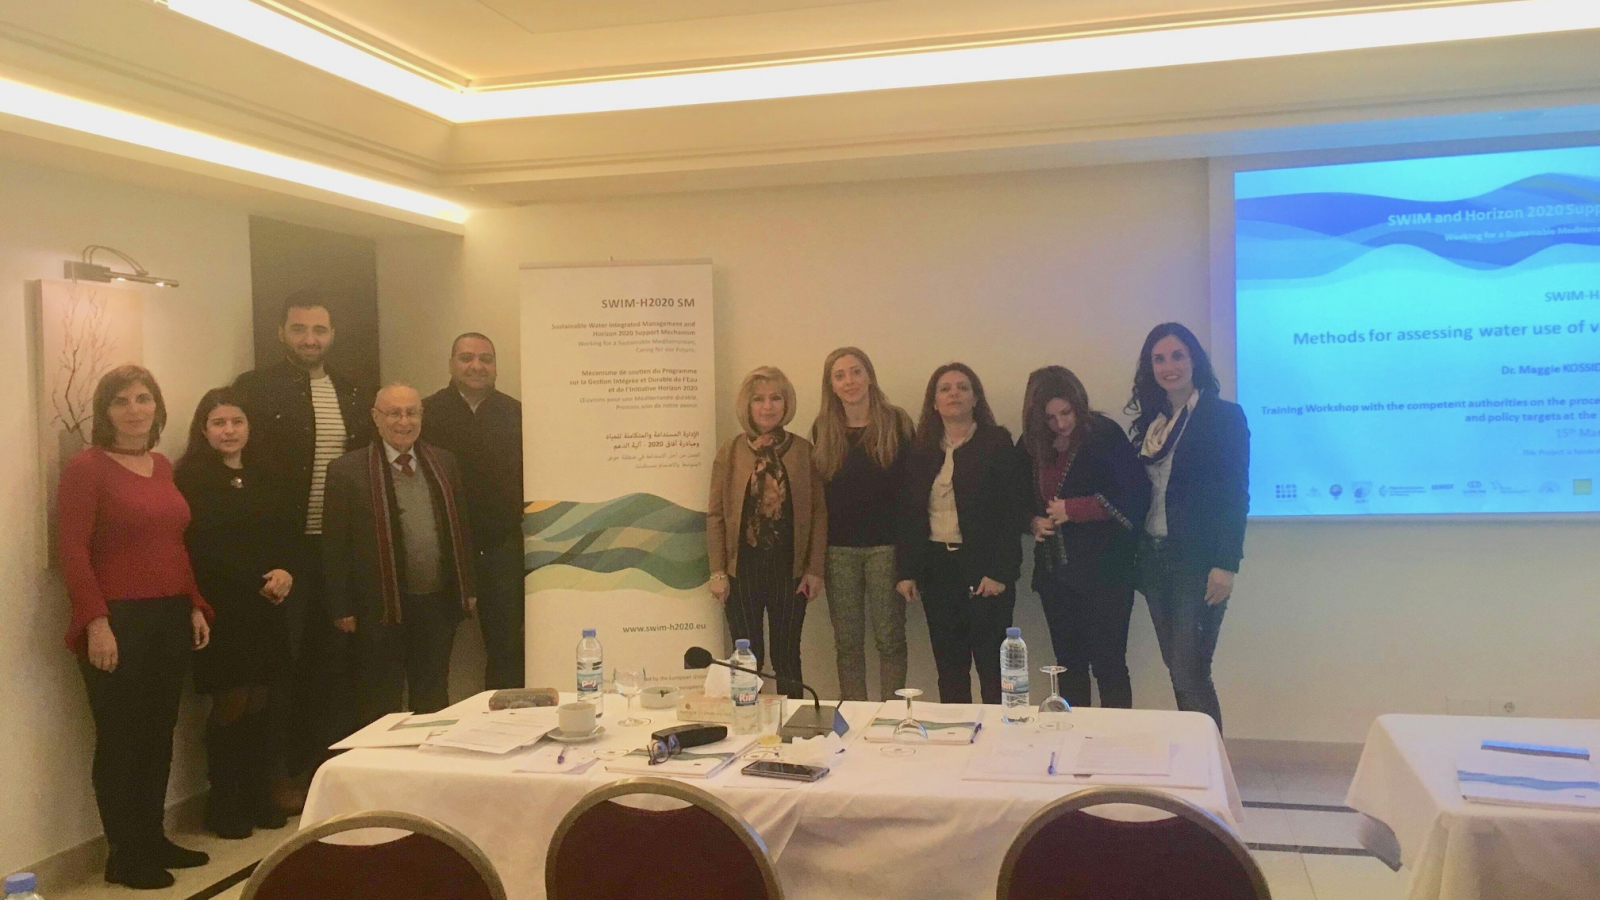 Lebanon: EU Workshop on designing decentralised water